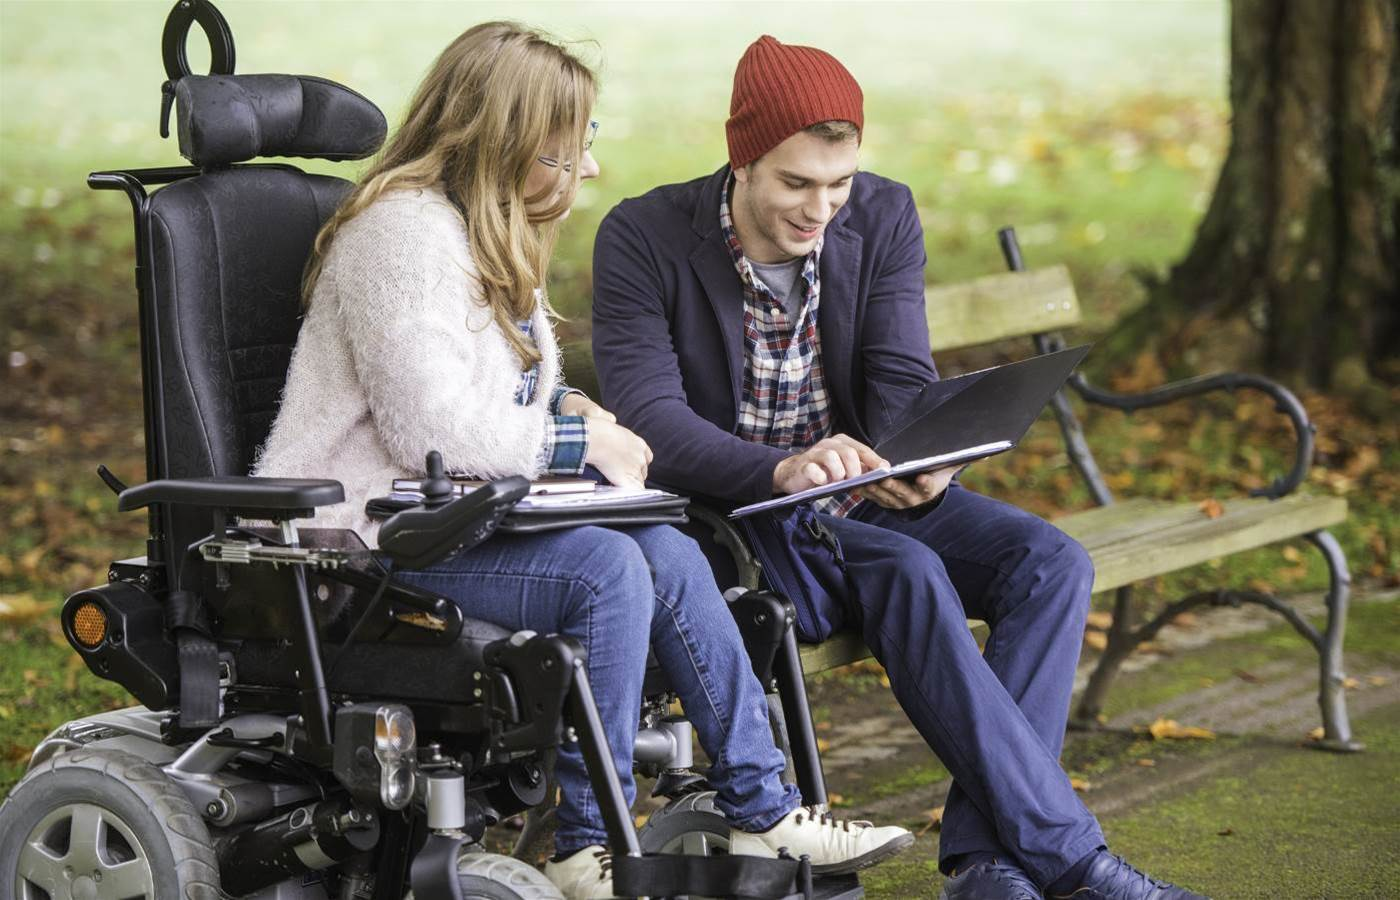 Microsoft partner deploys Dynamics 365 to disability support provider